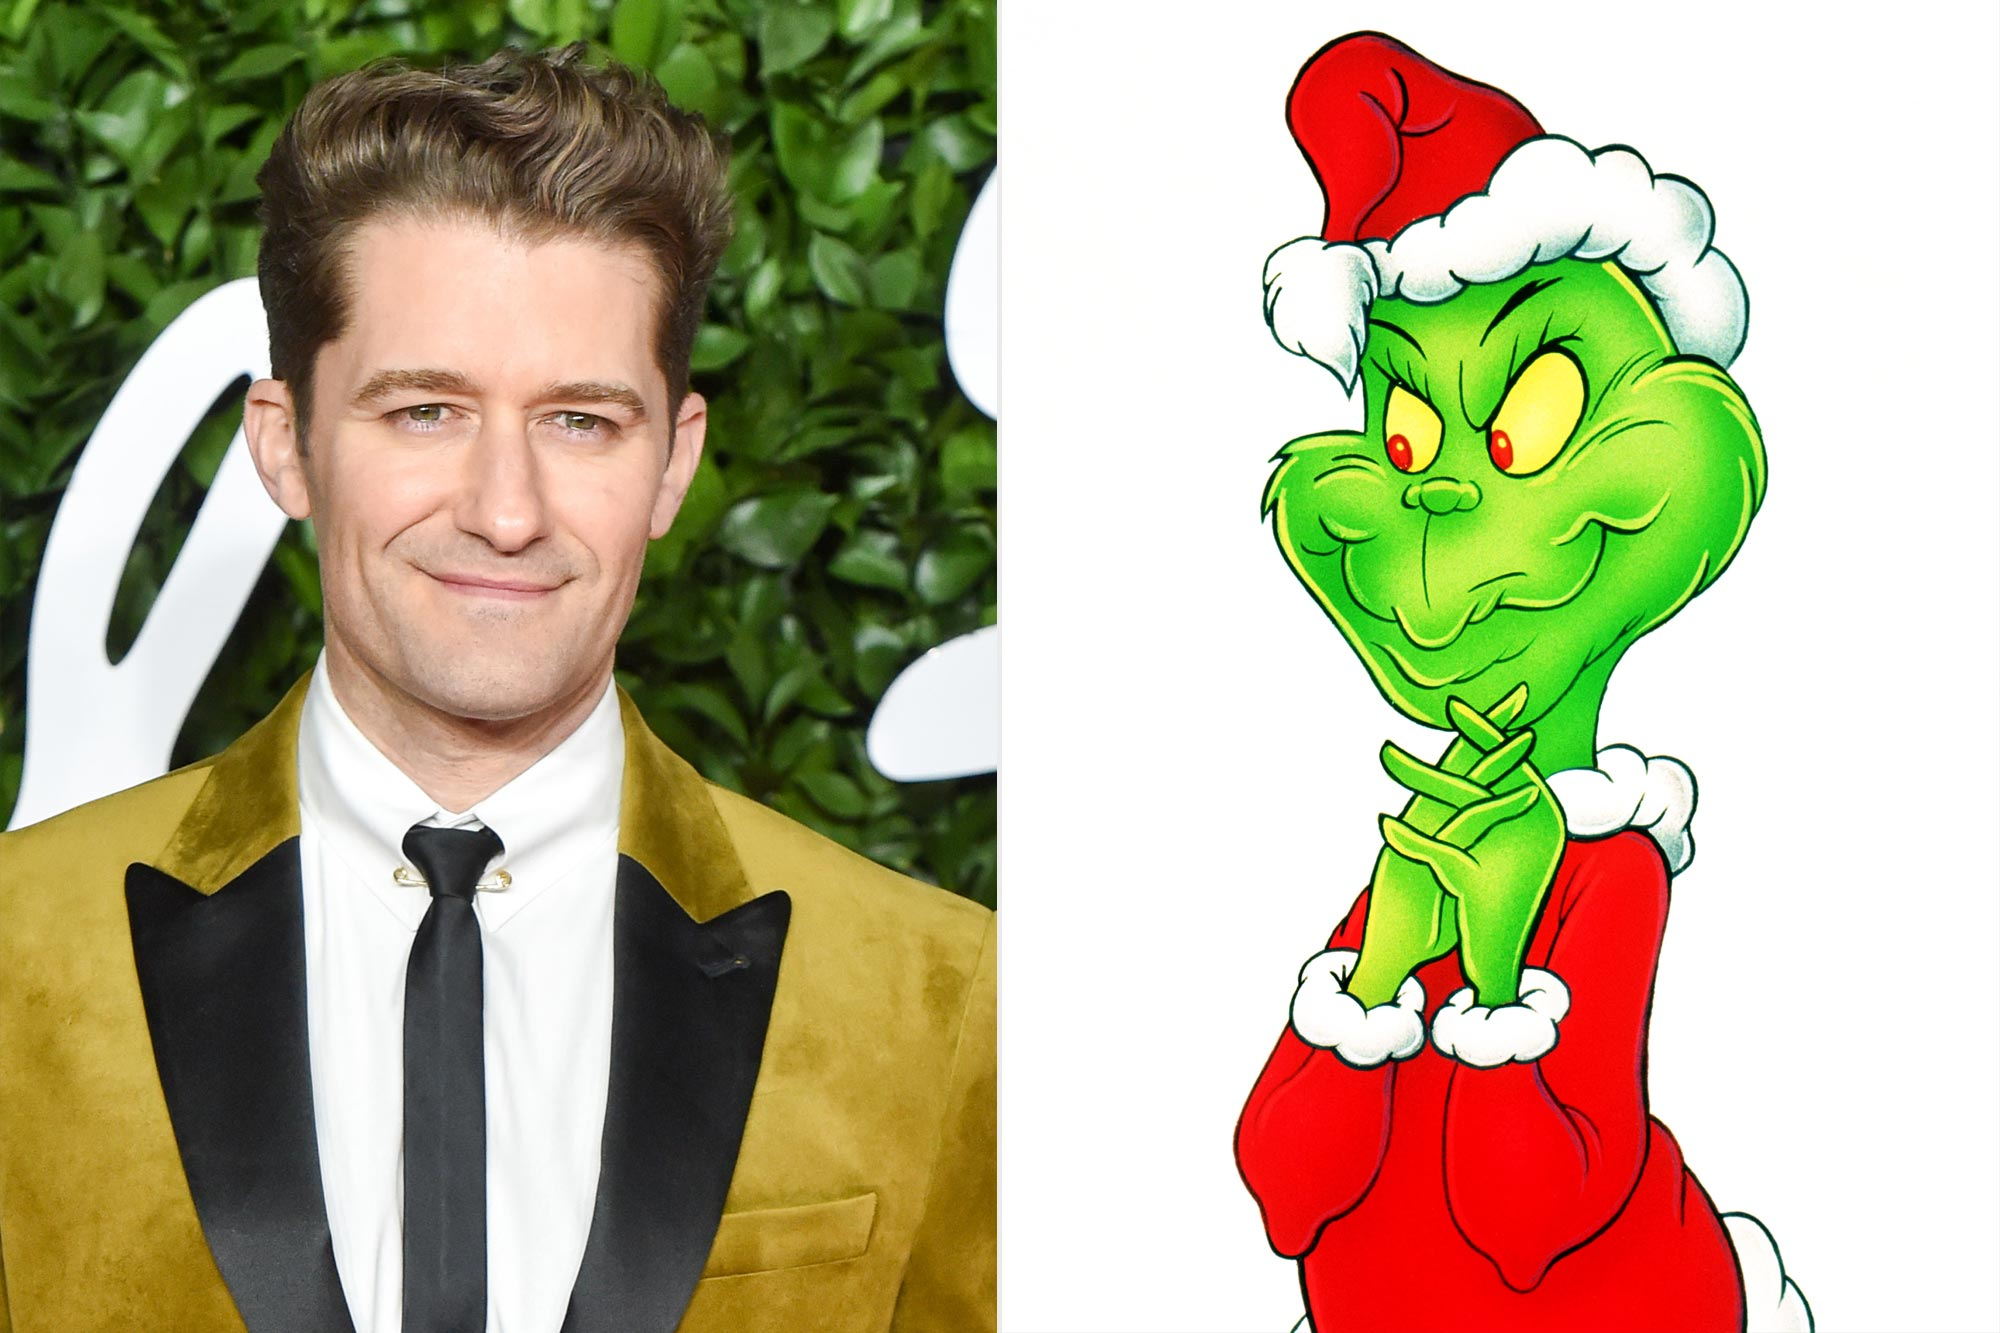 Matthew Morrison; The Grinch